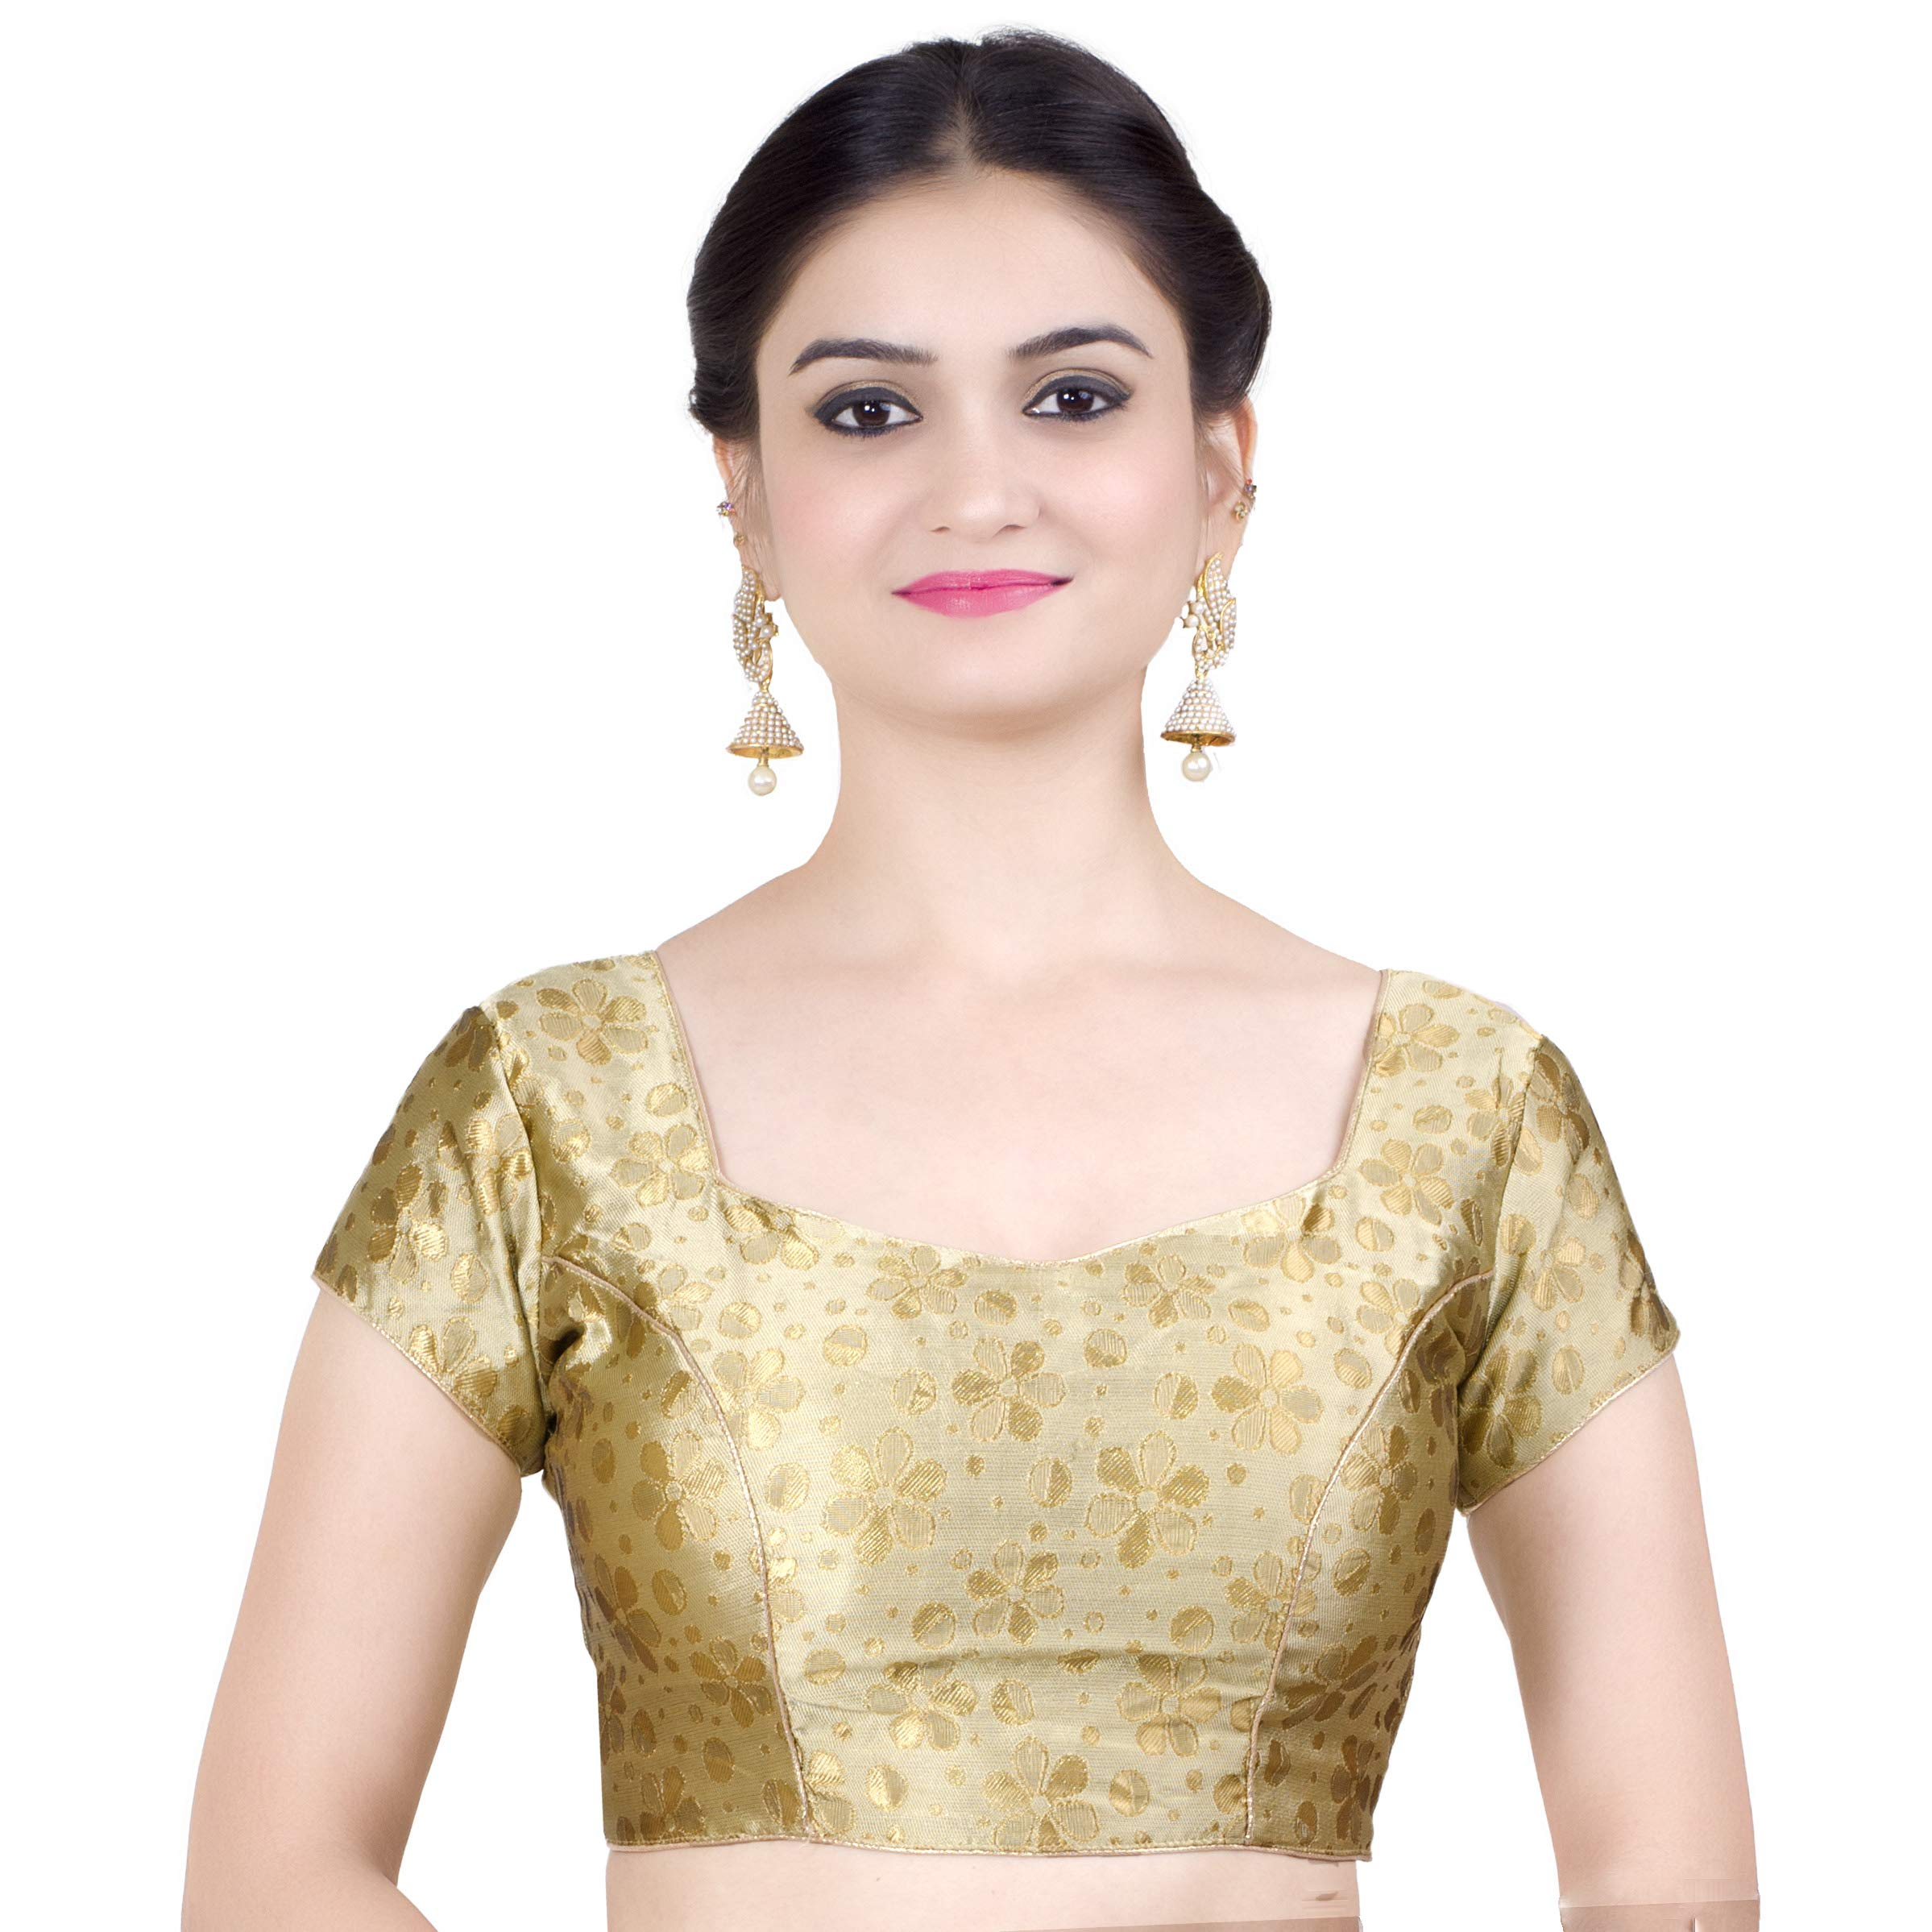 Chandrakala Women's Stretchable Readymade Lycra Gold Indian Ethnic Saree Blouse Crop Top Choli-X-Large (B117GOL5)